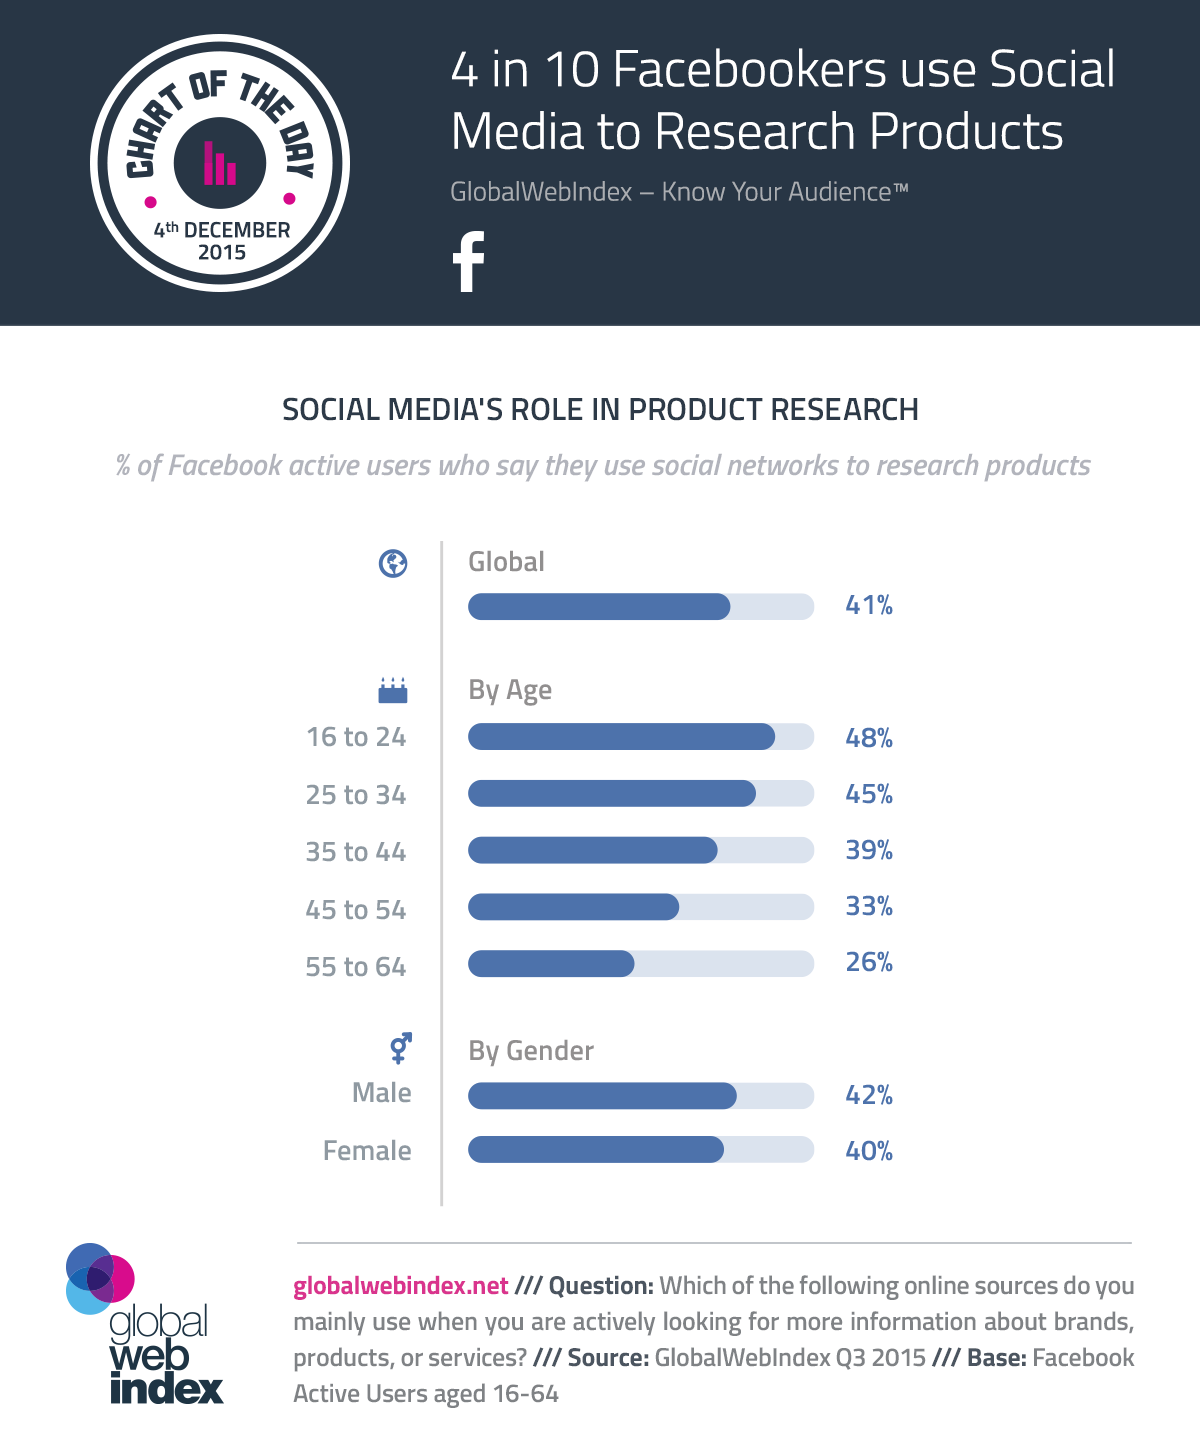 COTD-Charts-4-Dec-2015-4-in-10-Facebookers-use-Social-Media-to-Research-Products.png